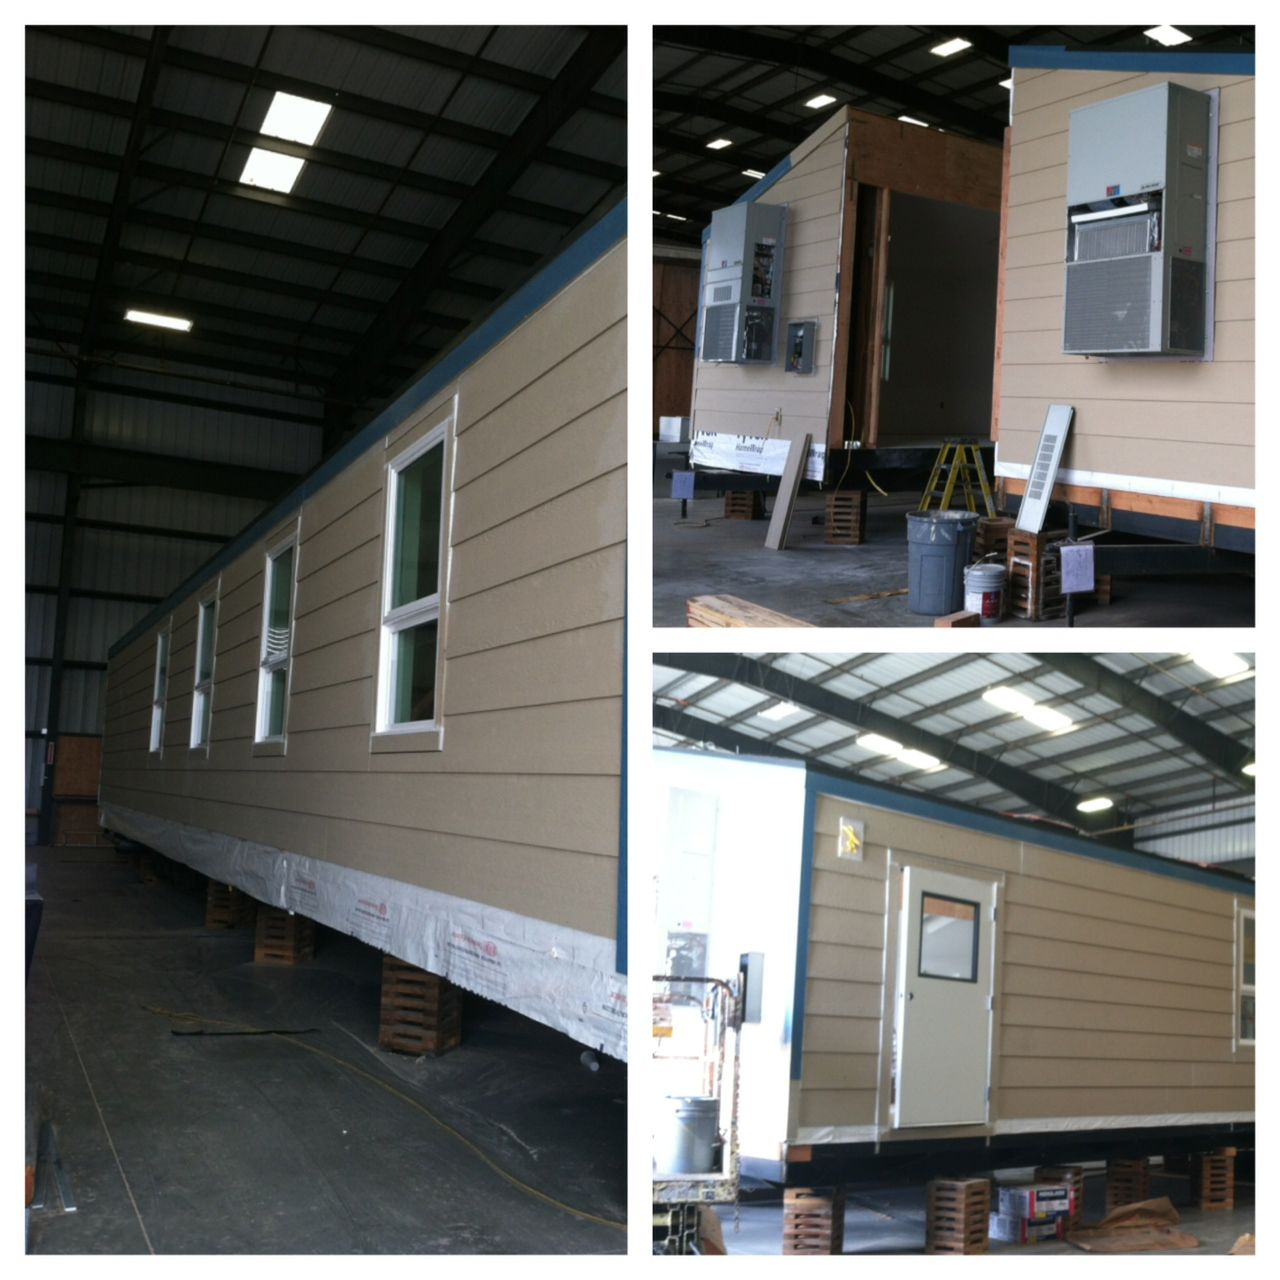 24x60 commercial modular building, custom designed and built in our factory. www.apitrailers.com